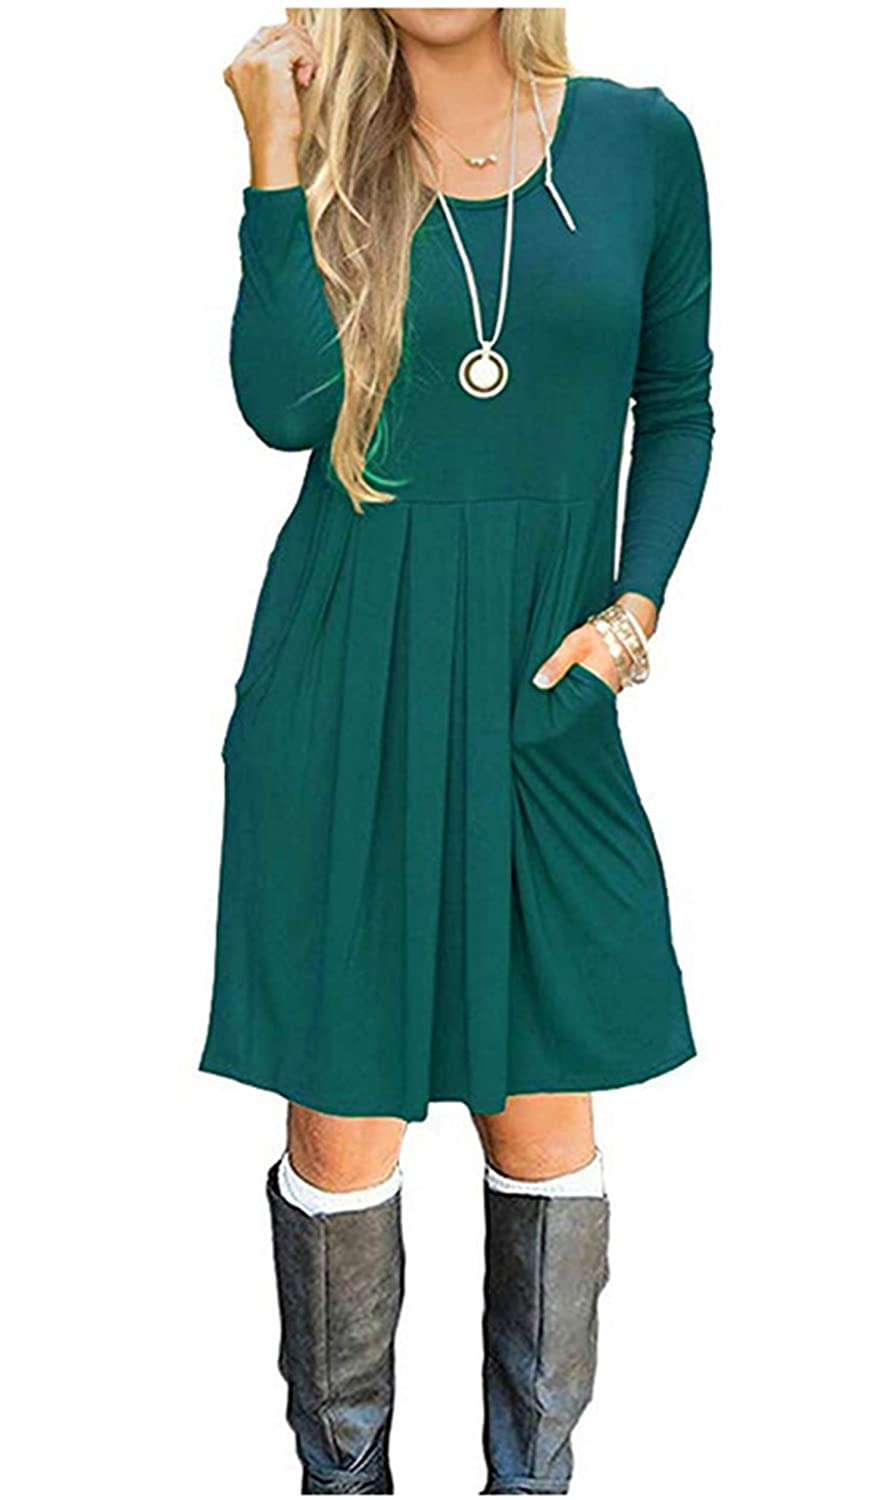 Dark Cyan HUALAIMEI Women's Long Sleeve Casual Dress with Pockets